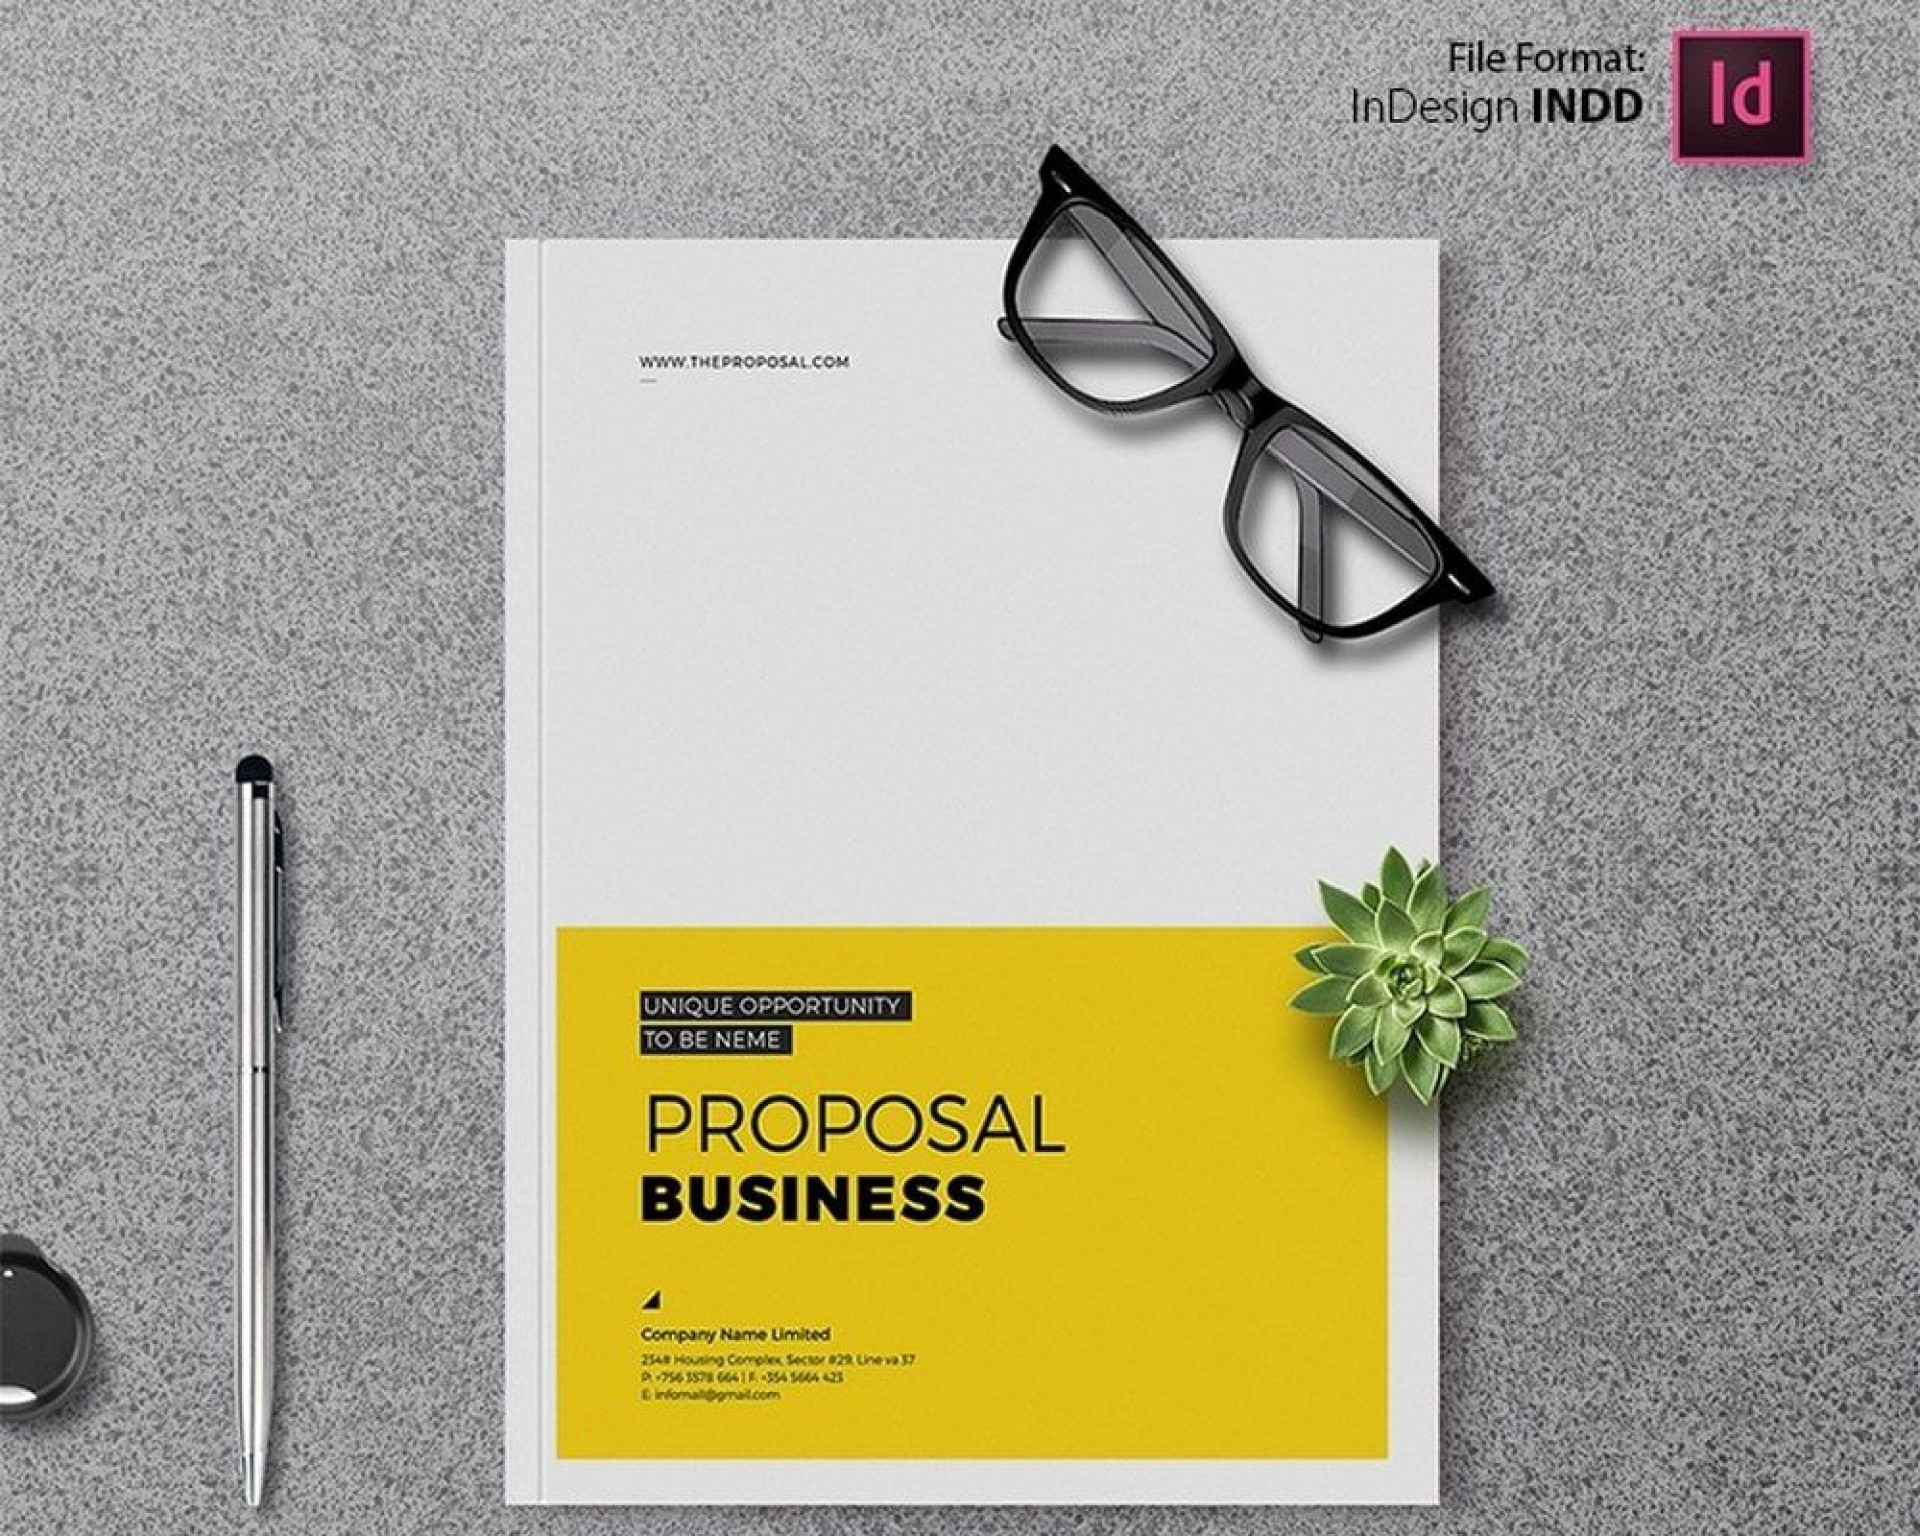 007 Incredible Adobe Photoshop Brochure Template Free Download Concept 1920